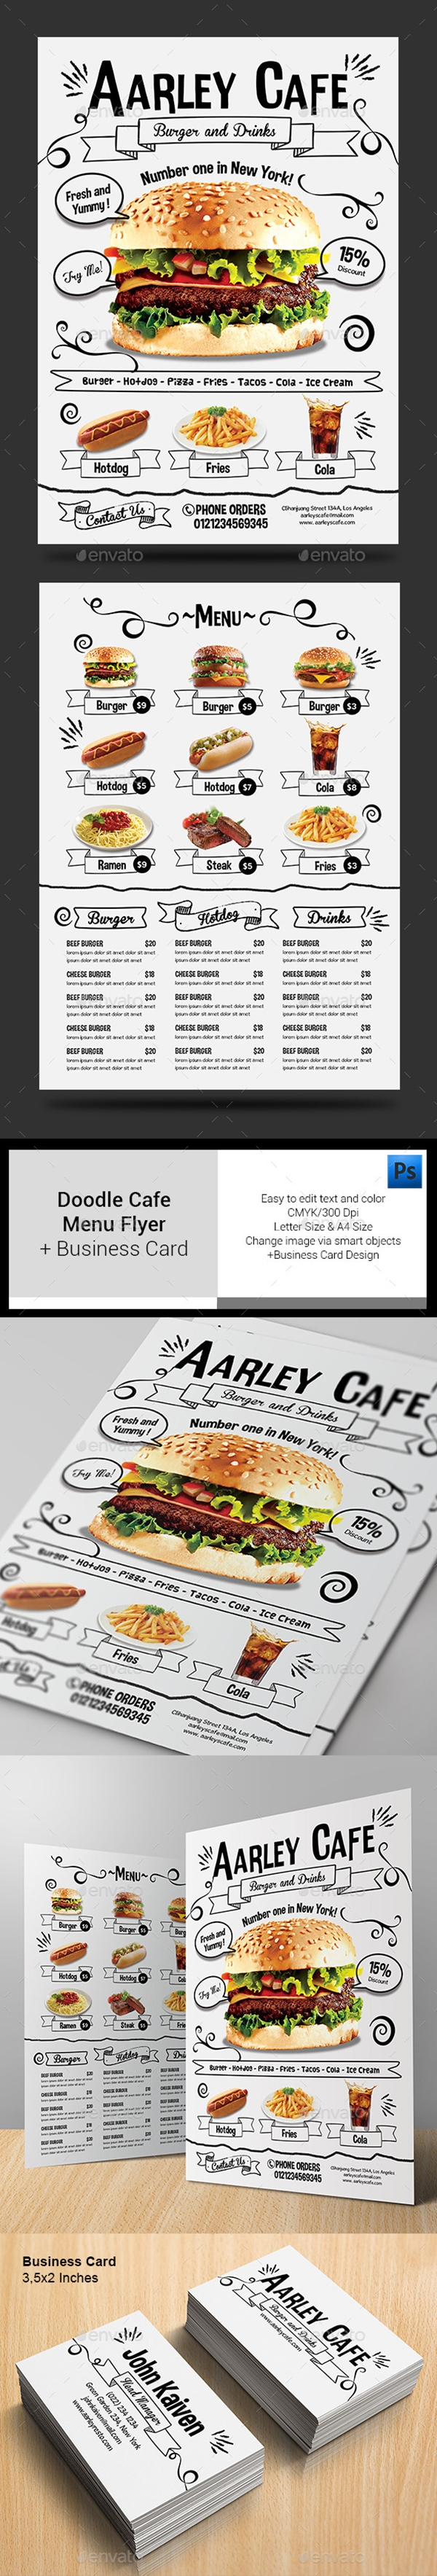 49+ creative restaurant menu design ideas that will trick people to